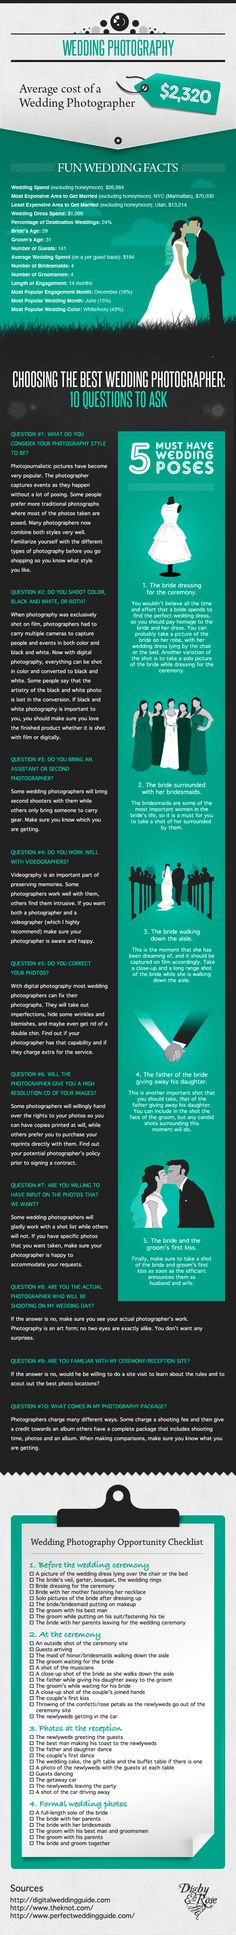 Great reference for future brides to have regarding choosing a wedding photographer.